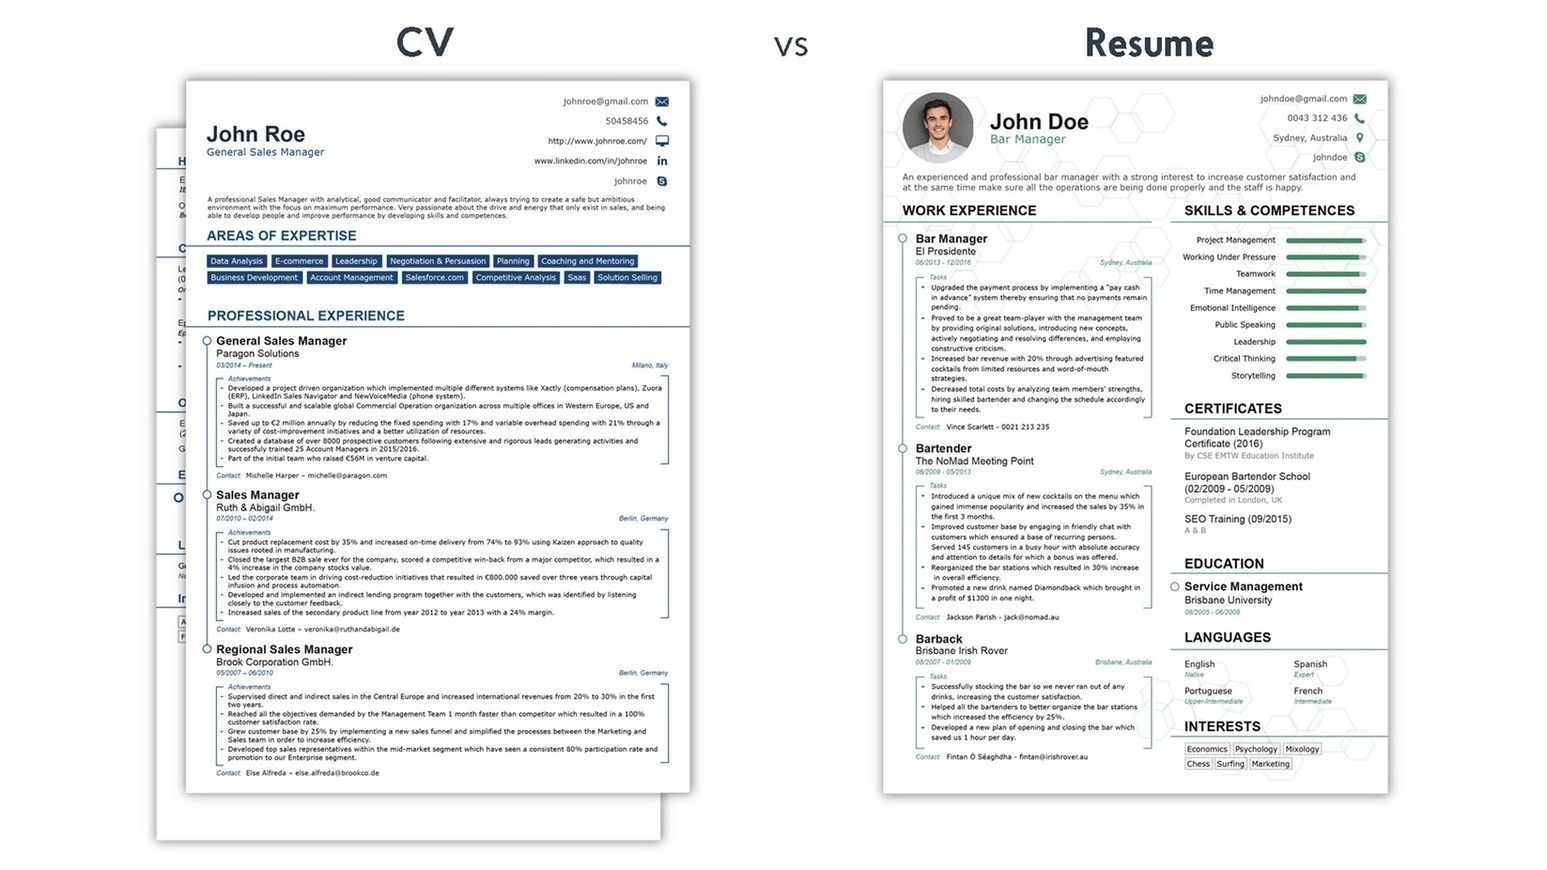 Cv Vs Resume What Is The Difference Examples E Learning Instructional Design And Online Teaching Education Resume Curriculum Vitae Resume Writing